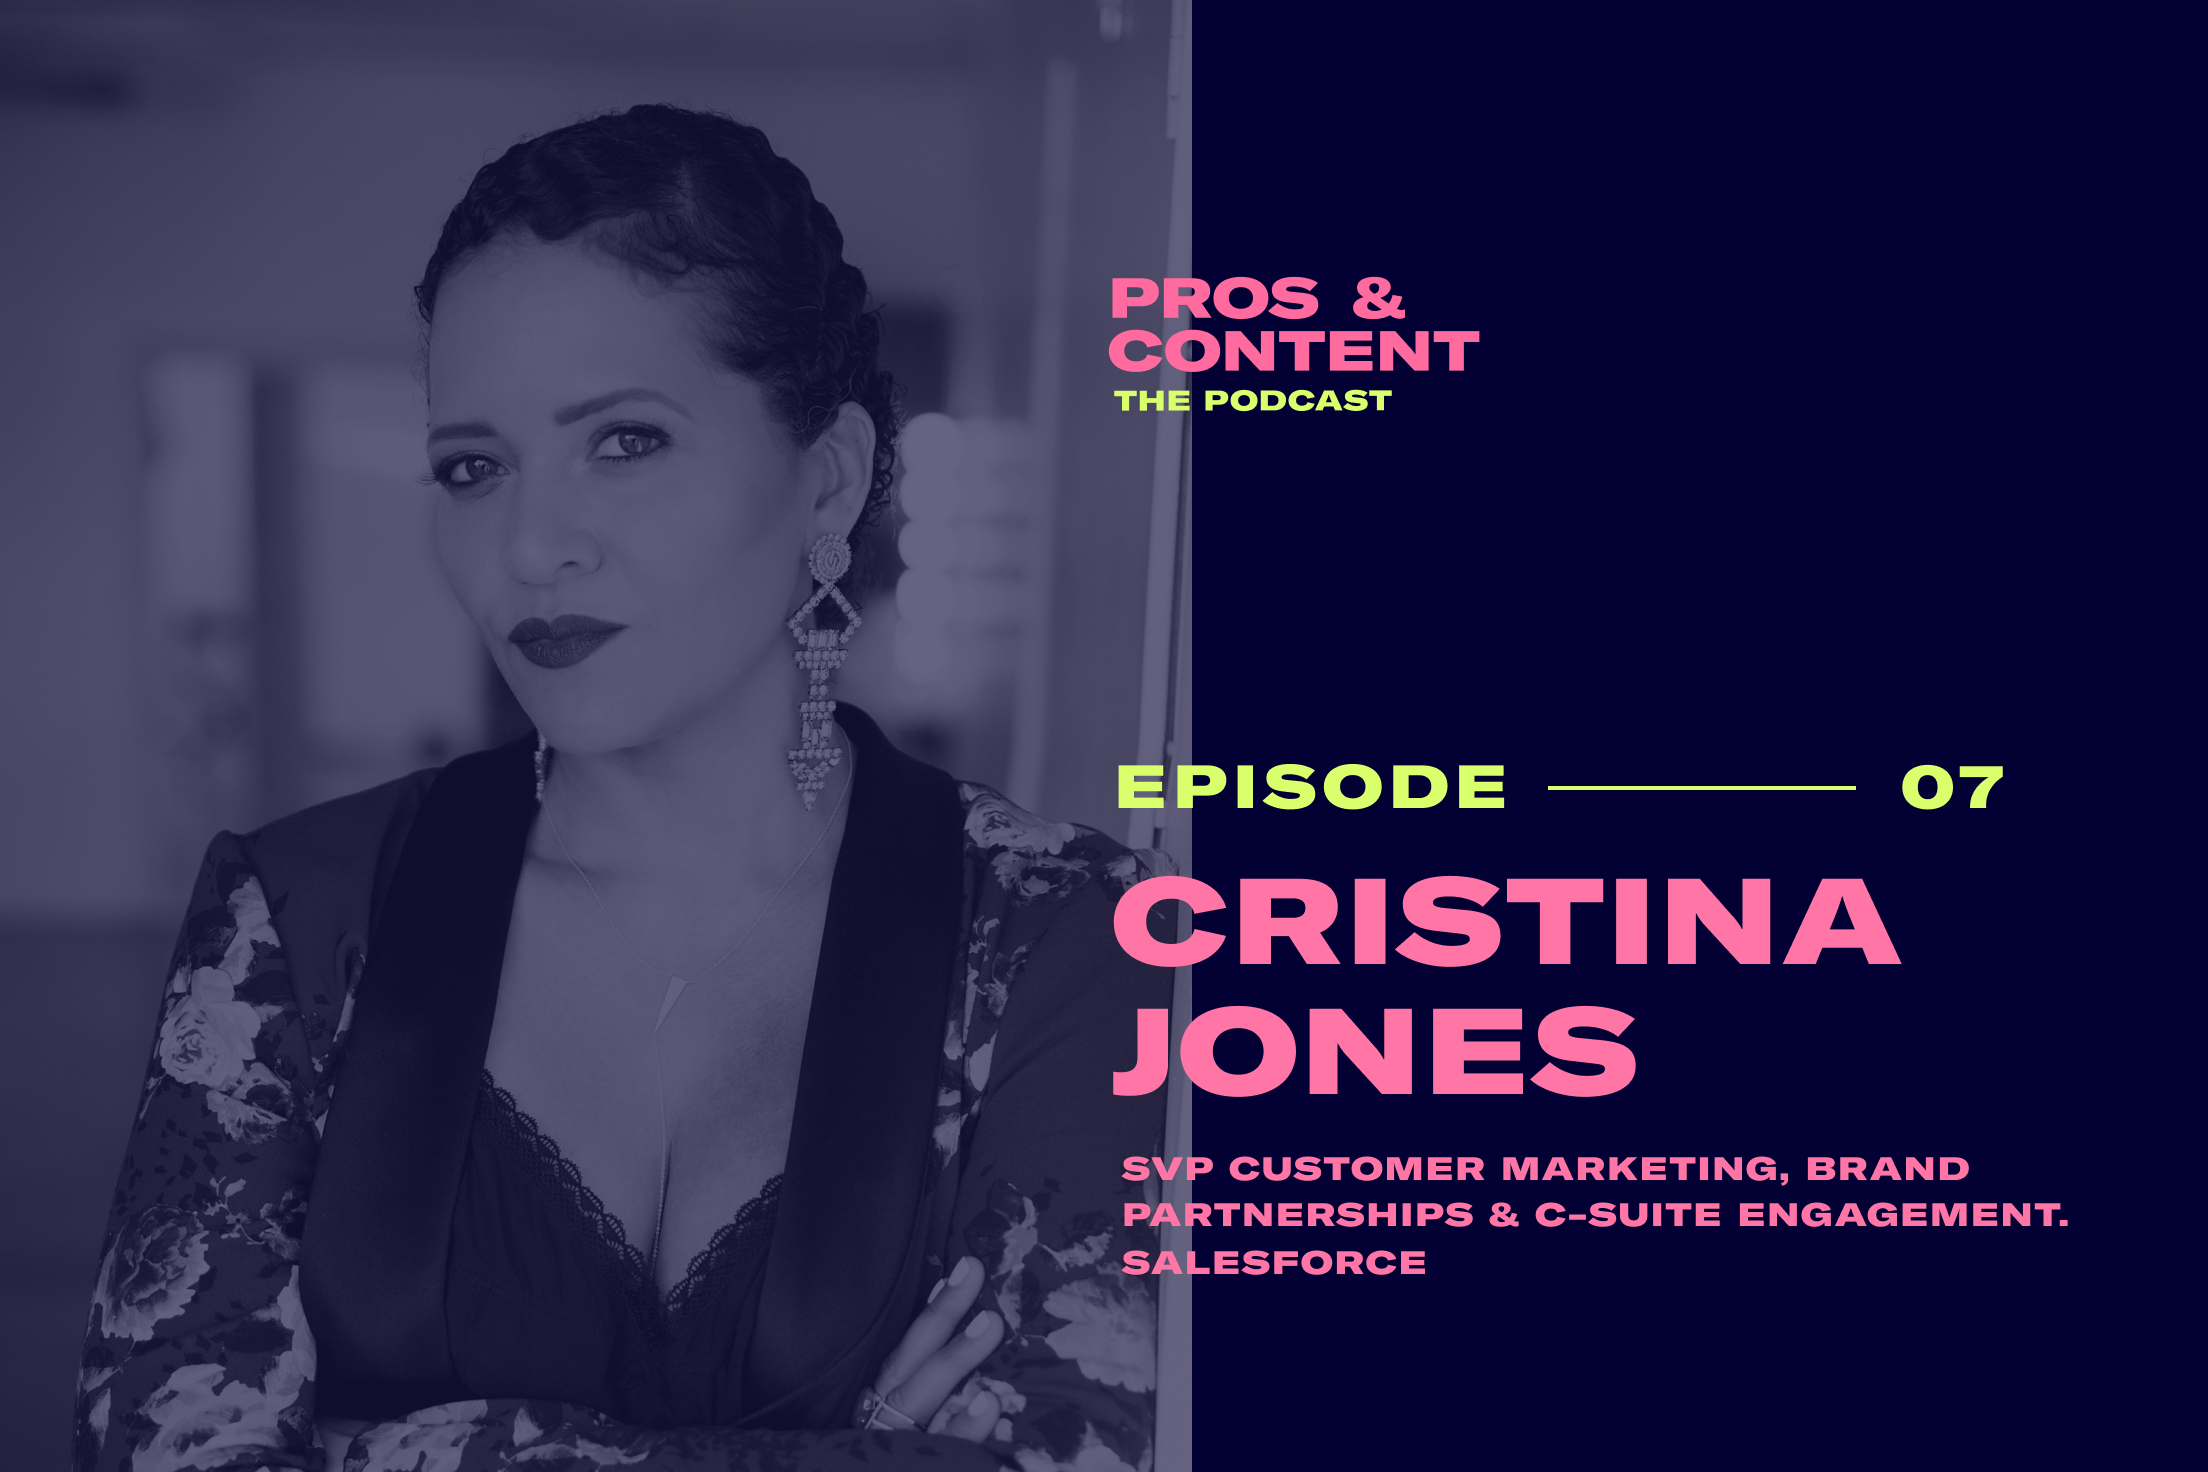 Pros & Content Podcast: Cristina Jones on Content Intelligence Tools